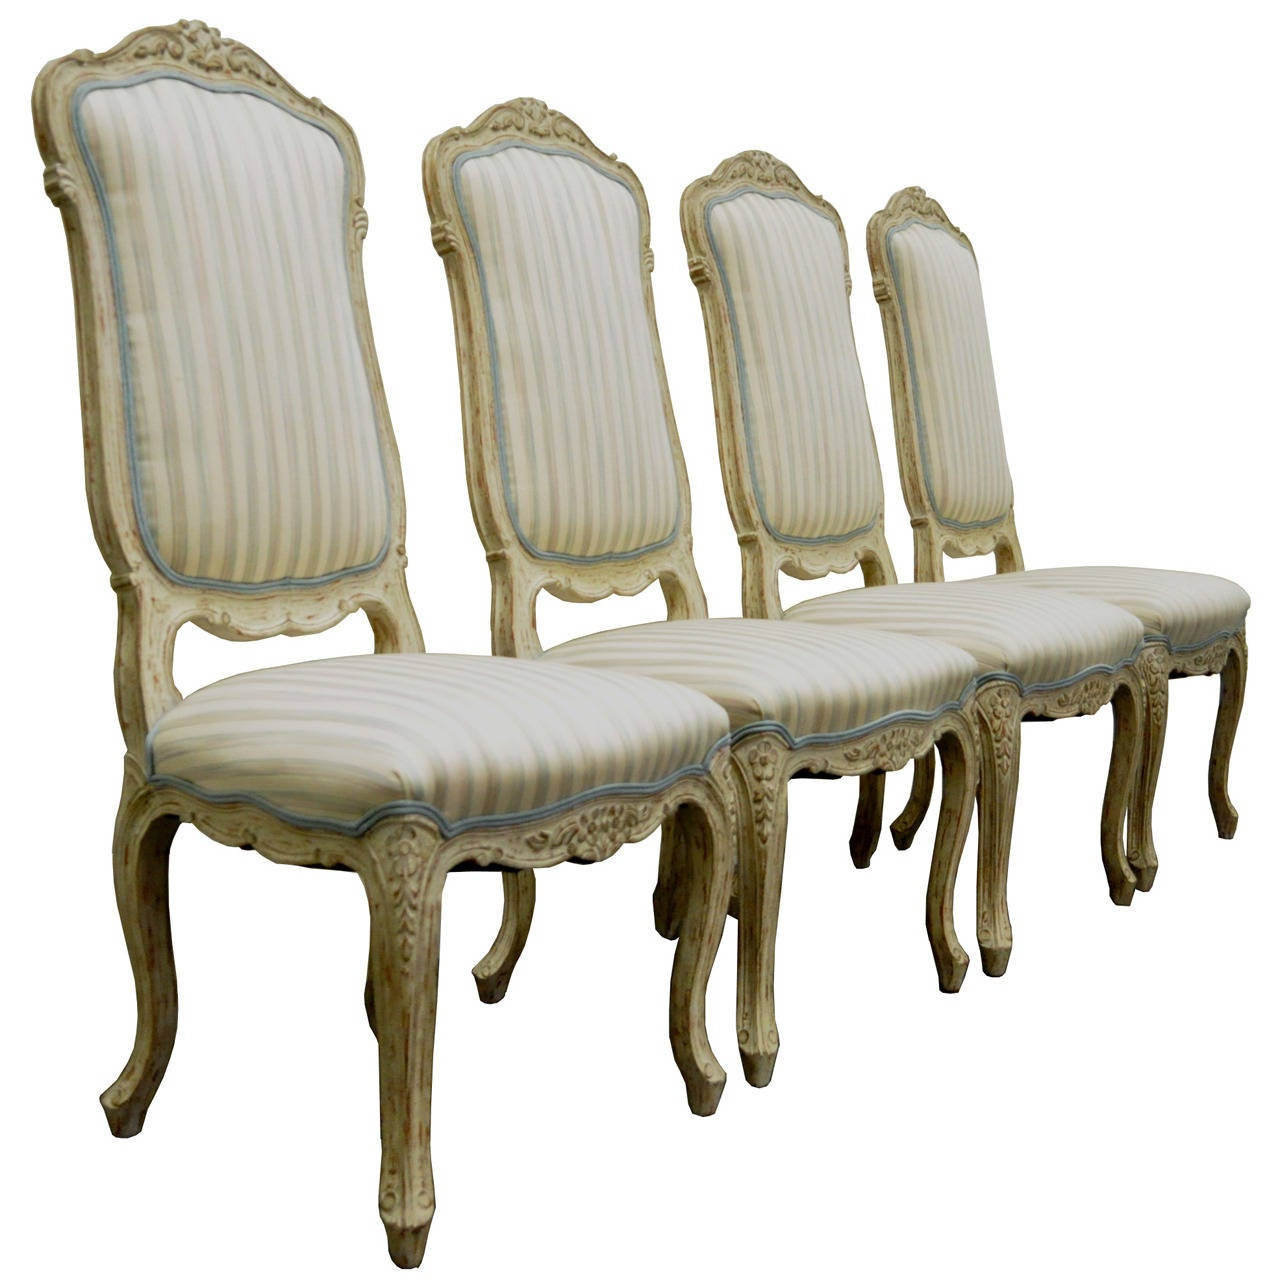 Louis xv dining chair - 4 Carved Swedish Rococo Or French Louis Xv Style Painted Dining Chairs 1